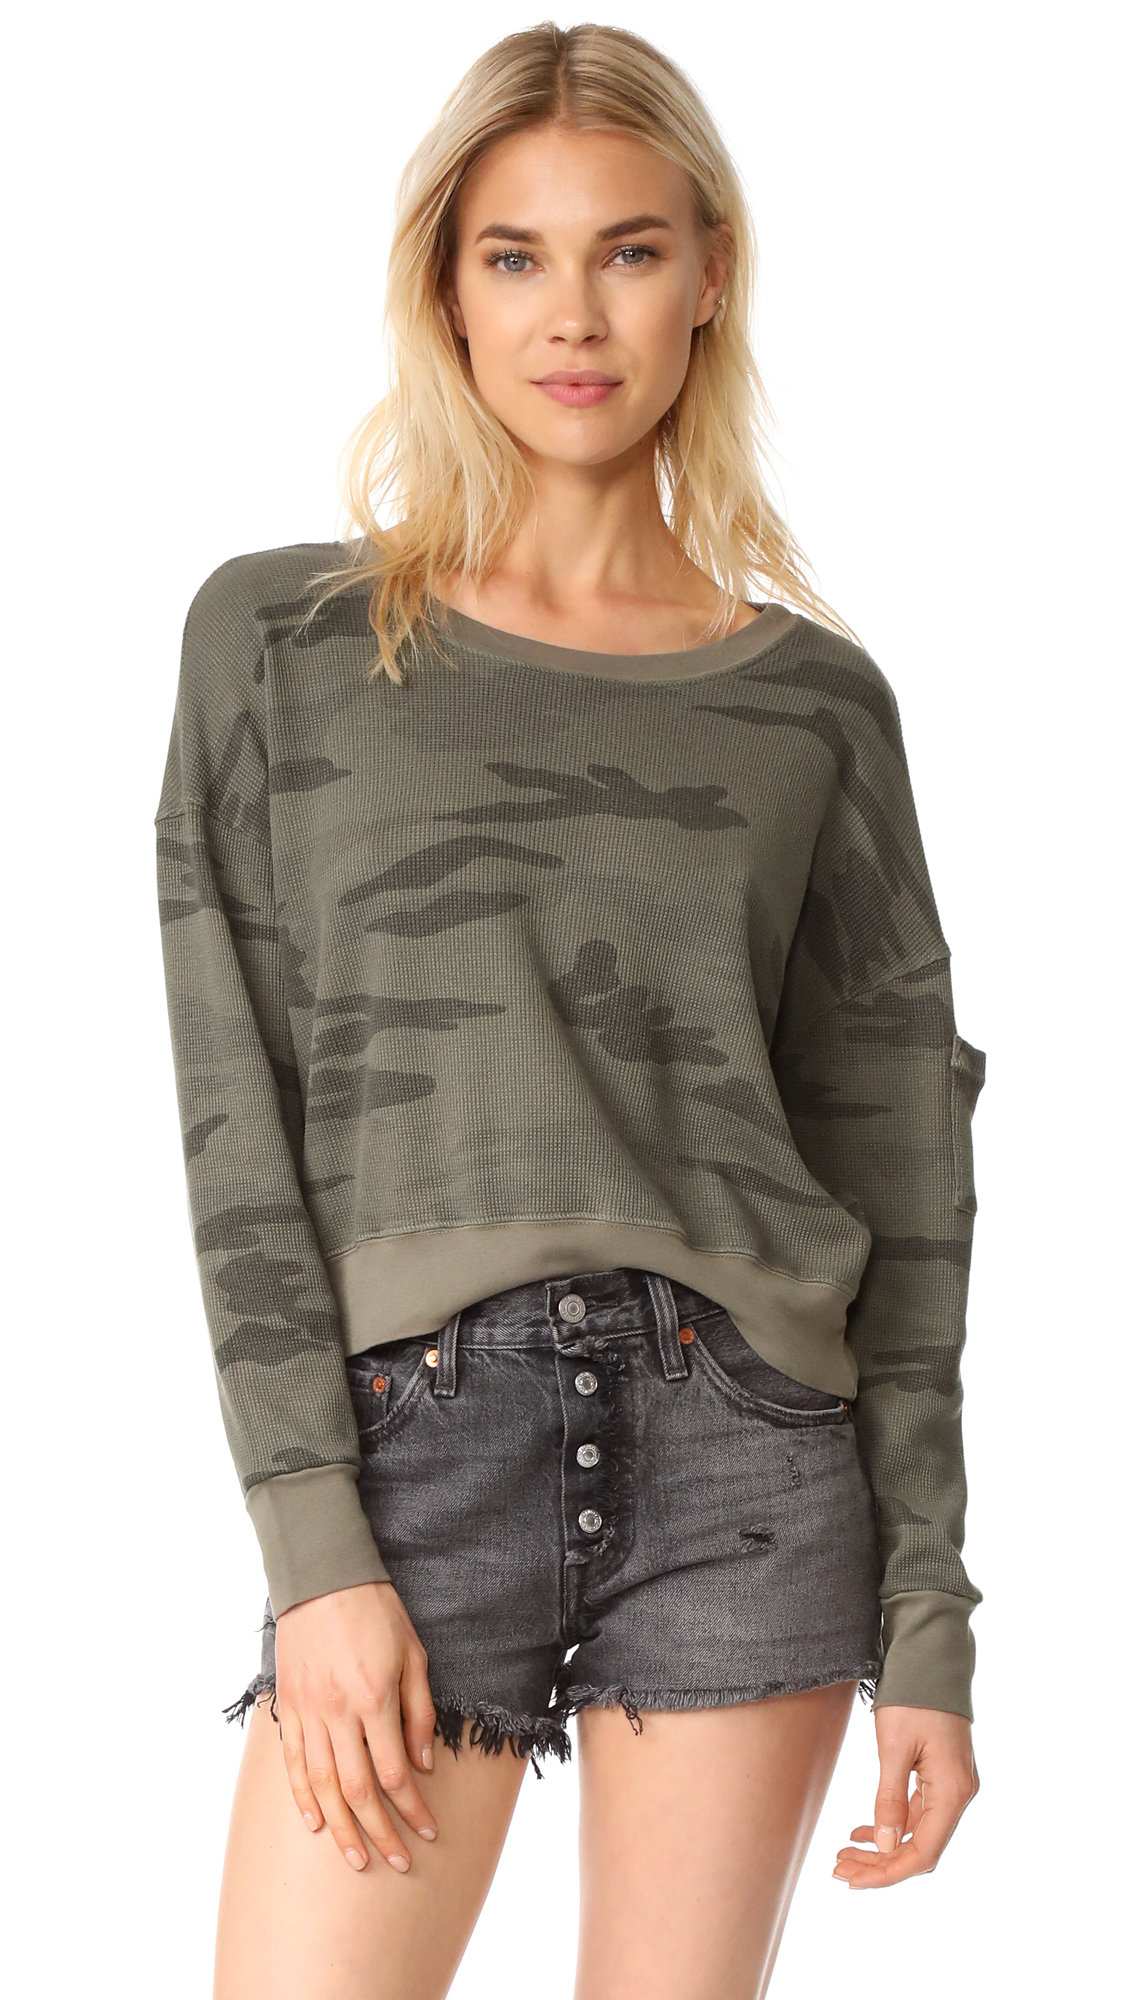 Splendid Thermal Sweater In Olive Branch